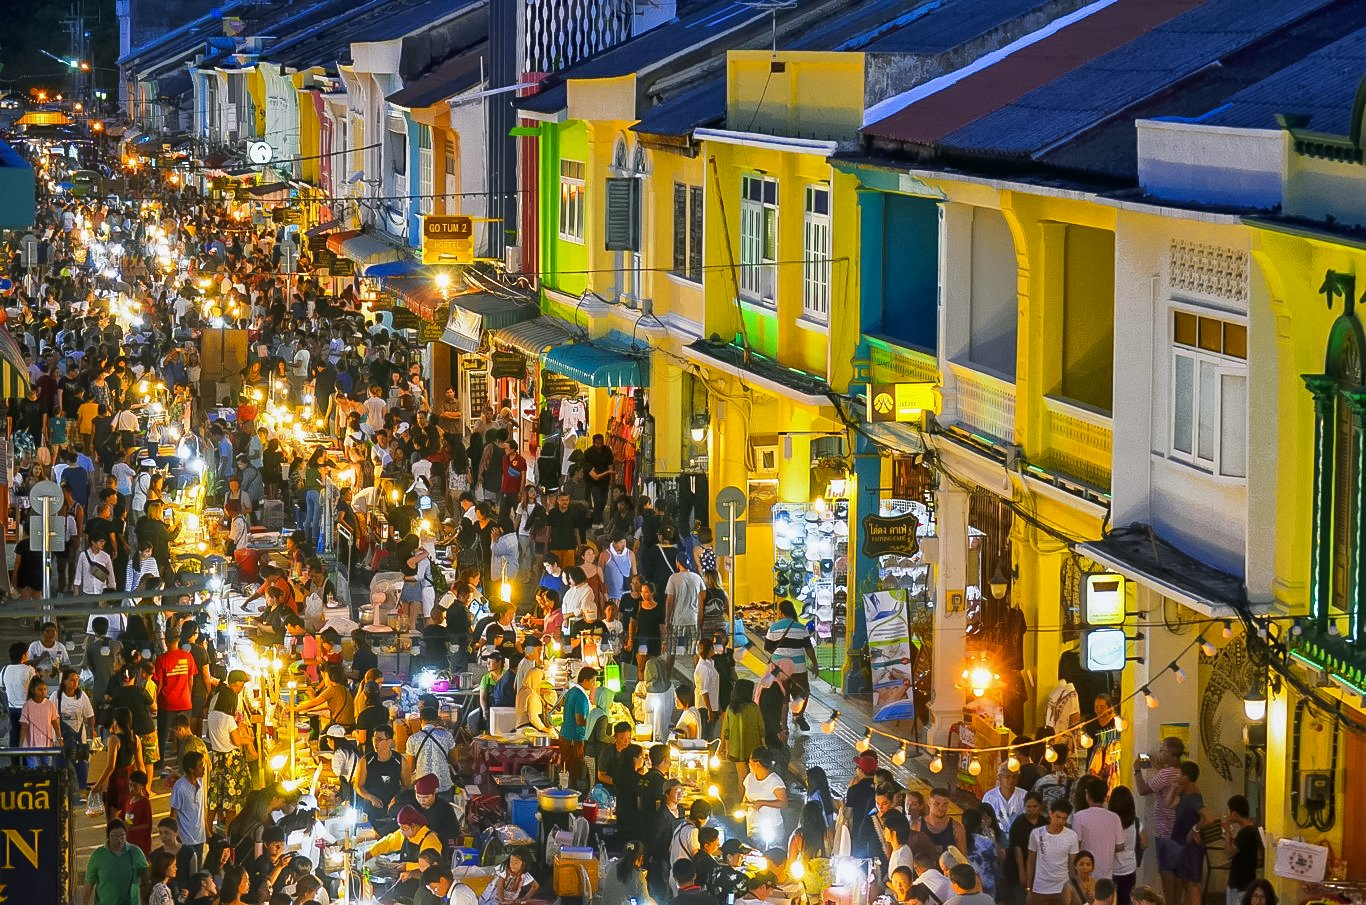 Phuket Town Weekend Night Market (also called Ak Phuket night market) is an excellent place to see real Phuket Thailand.